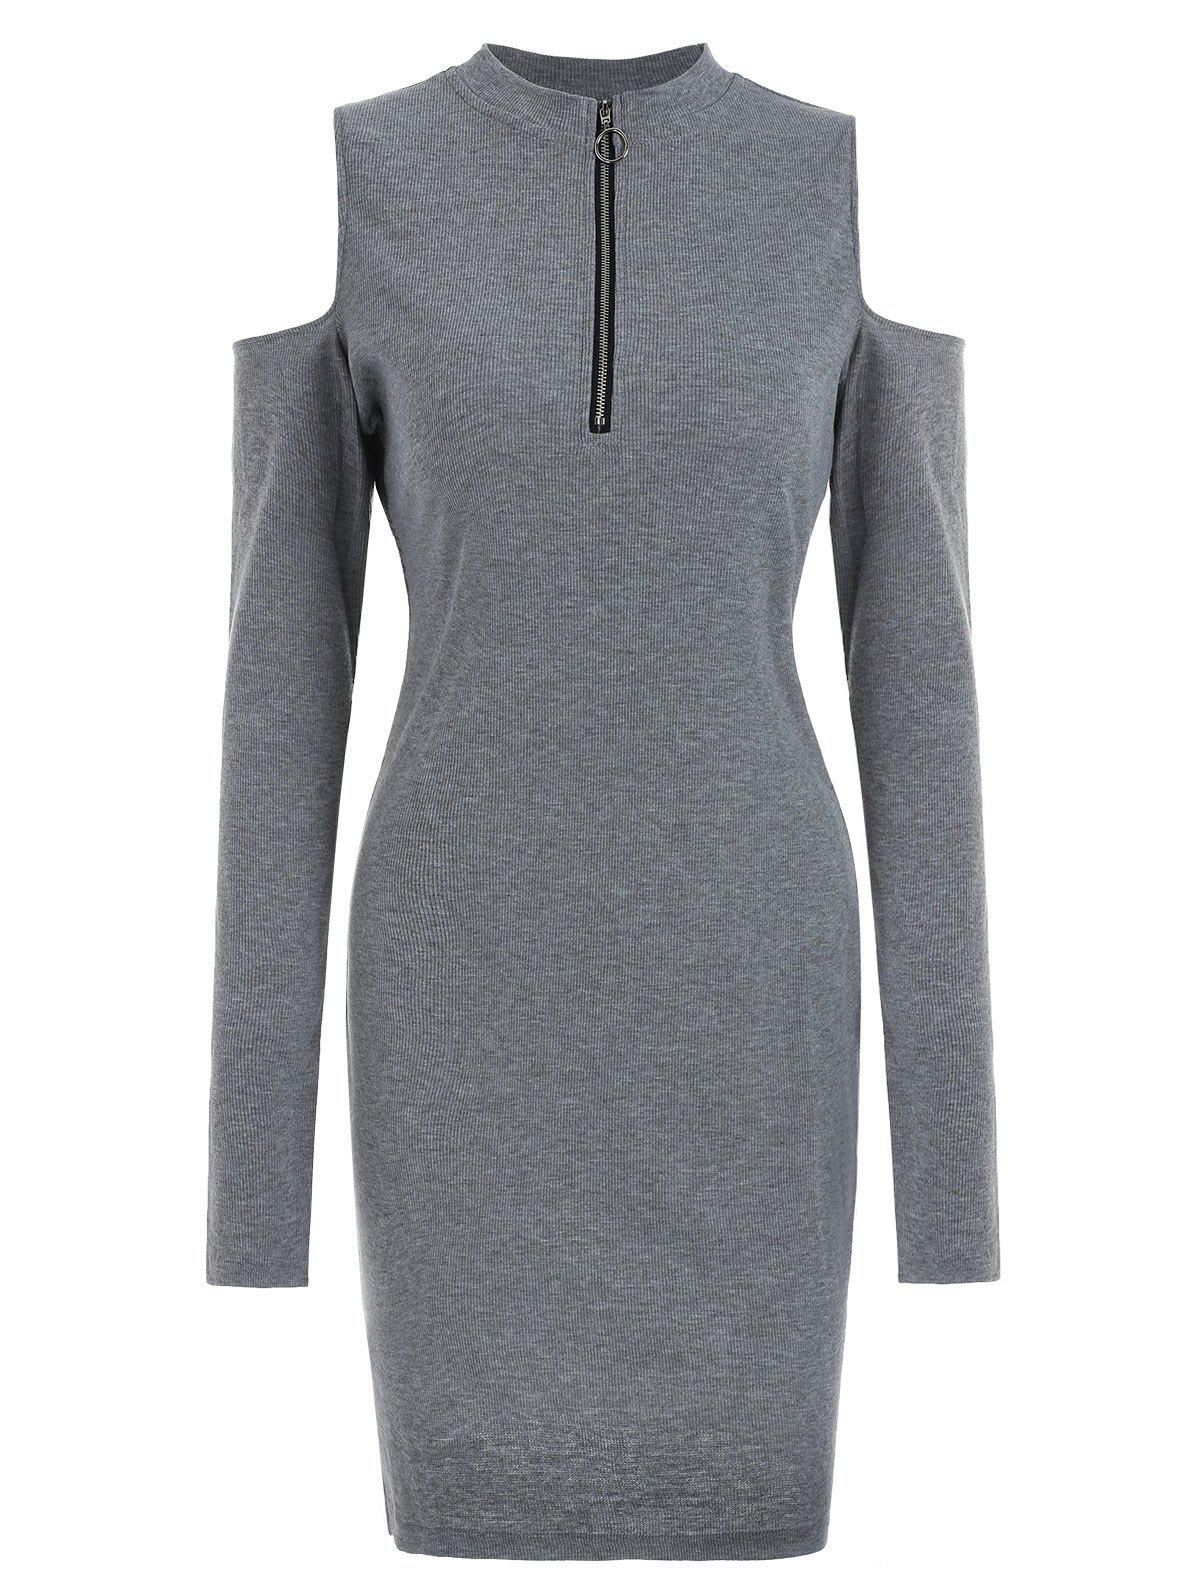 f4be5f6d468a 50% OFF   2019 Half Zip Cold Shoulder Long Sleeves Bodycon Jumper ...